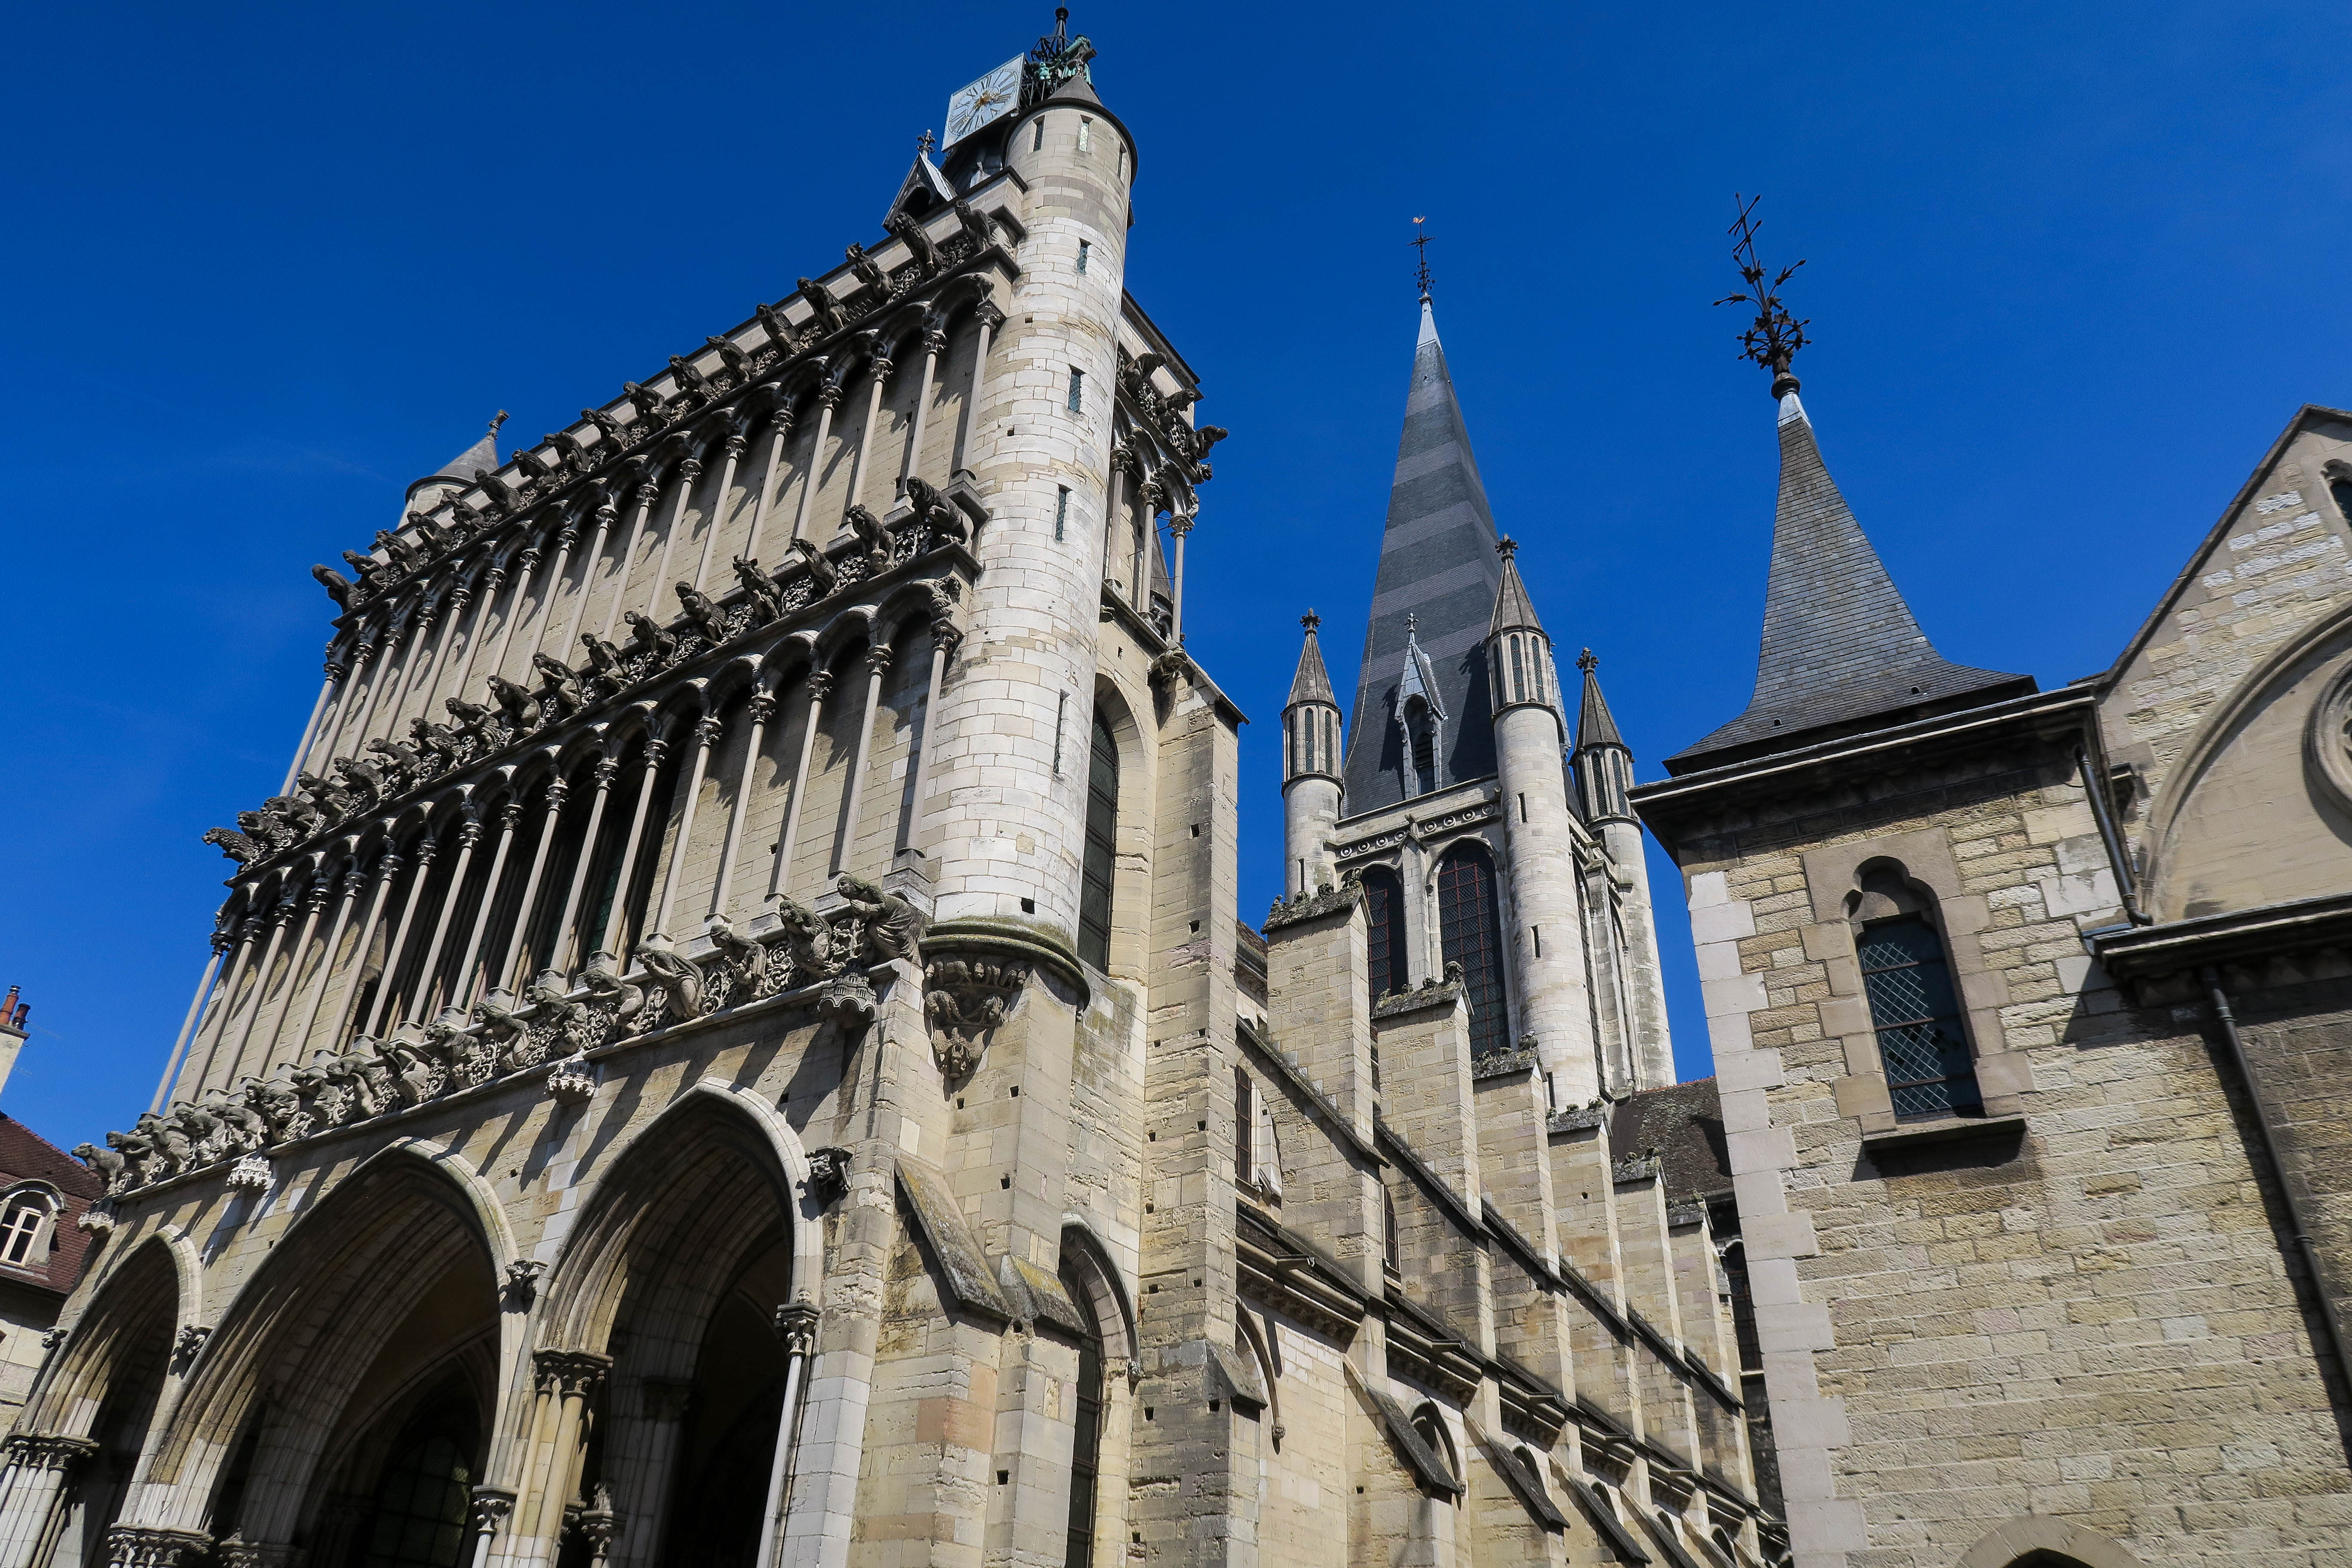 Dijon, France. Travel Blog & Diary by Rosie Andre (wanderlust, traveller, world, france, europe, photos, daytrip, guide, travel tips, photograph, photography, photos, park, architecture, globe trotter, paris, french, city)